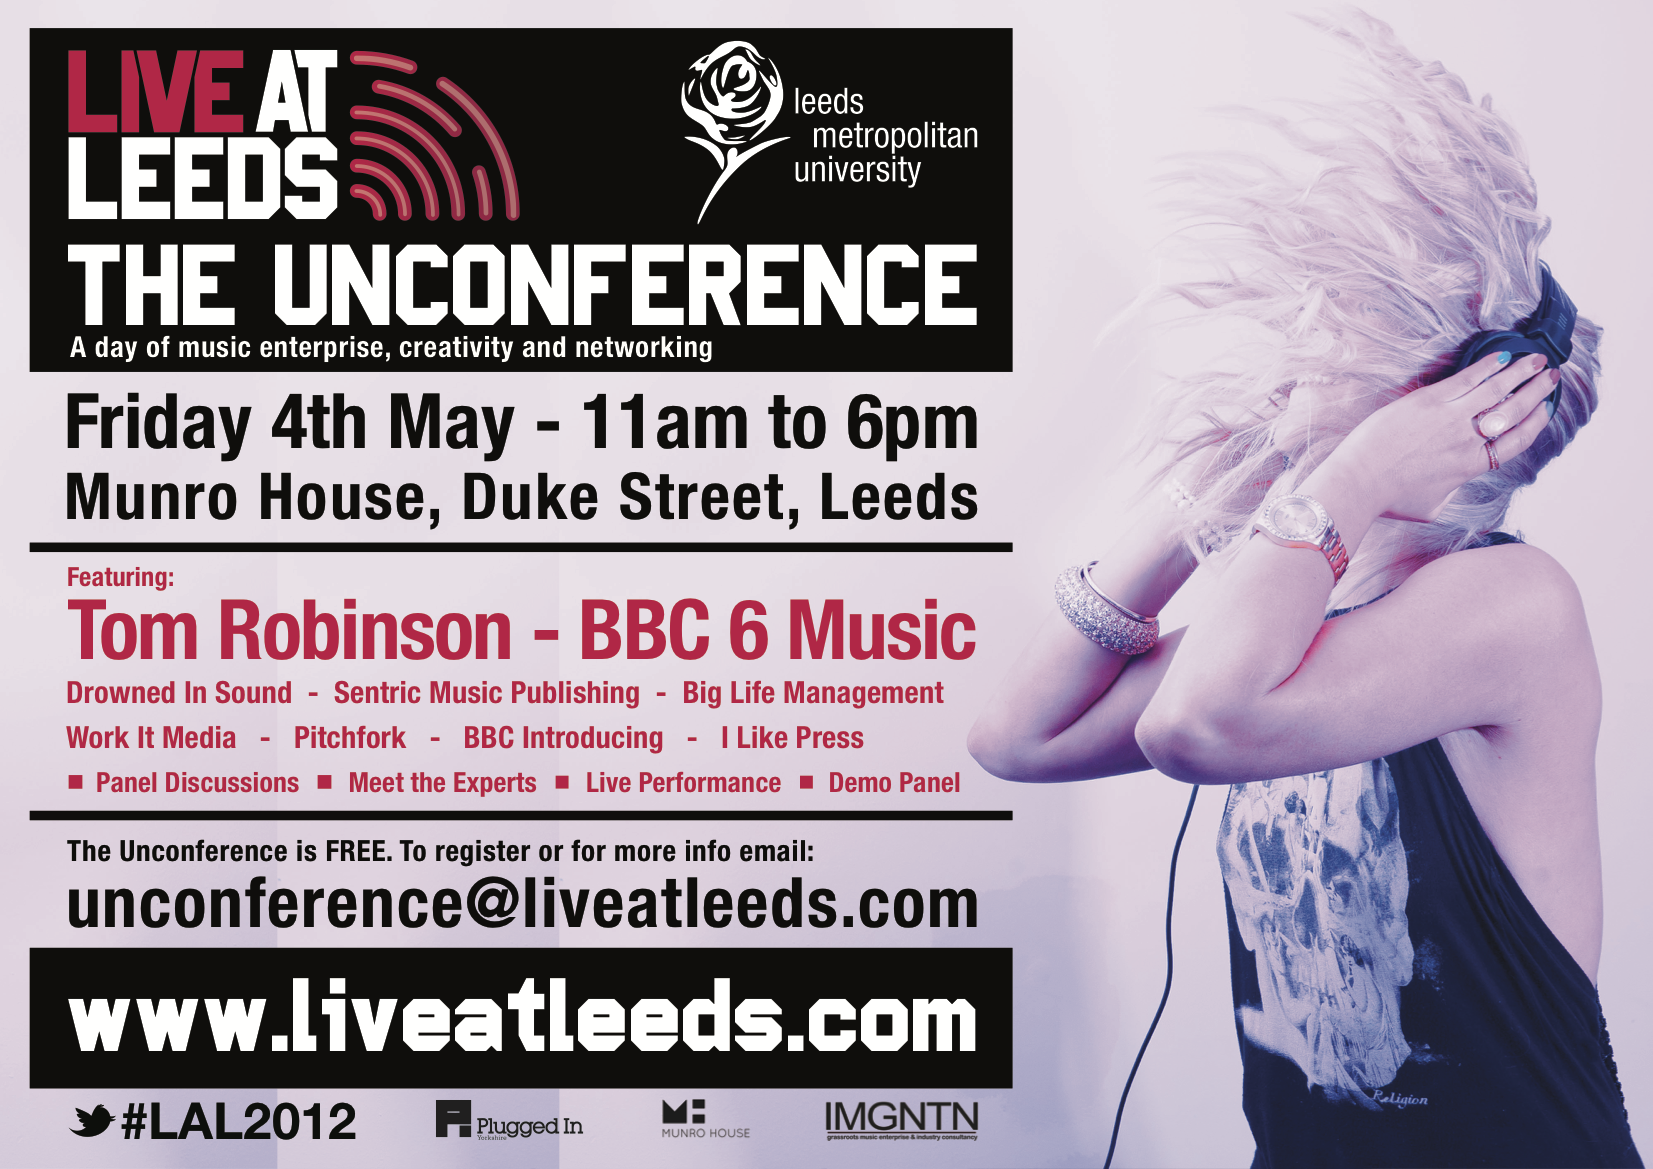 Live At Leeds – The Unconference 2012 Friday 4th May at Munro House, Duke Street         11.00-12.00: Introductory Open Morning   A personal welcome for everyone attending The Unconference, where we'll try and point you toward like-minded people and address your specific enquiries. Our welcome board will allow you to scan your fellow attendees and numerous stalls will be able for your perusal       12.00-12.30: Tom Robinson Keynote   After 30 years working as a songwriter and a further 10 championing new artists on BBC Radio 6 Music, Tom has seen the music industry from both sides. His freshonthenet blog - and occasional writing/performance workshops - offer practical help & info for independent musicians. Here he argues there has never been a better time since the birth of rock'n'roll for outstanding new artists to get heard and break through. For the first time in history all you have to be is good.      12.30-12.45: coffee break             12.45 -13.45: Making The Most Of Your Digital Presence  Our panel of experts discuss the various roles in bring music to the digital platform, and how to make the most of your music, be it commercially, or in a promotional and marketing capacity, as well as looking at other tools to help bands maximise their presence and fanbase   Led by Sean Adams (Drowned In Sound) with Darren Hemmings (Motive Unknown), Colin Roberts (Big Life Management, Work It Media), Nick Holden (Get Ctrl)             13.45-14.00 – coffee break             14.00-15.00: Social Recommendation & The Digital Press  A look at how the digital landscape has altered the way we consume music and altered the way we engage with and find new artists, as well as how new artists can get exposure, and who from – looking from newspapers online and webzines, to blogs, to the social interactions of Spotify playlists and This Is My Jam.   Led by Sean Adams (Drowned In Sound) with Matt Britton (The Pigeon Post, Lost Lost Lost, Loomer Agency), Laura Snapes (Pitchfork) and Da